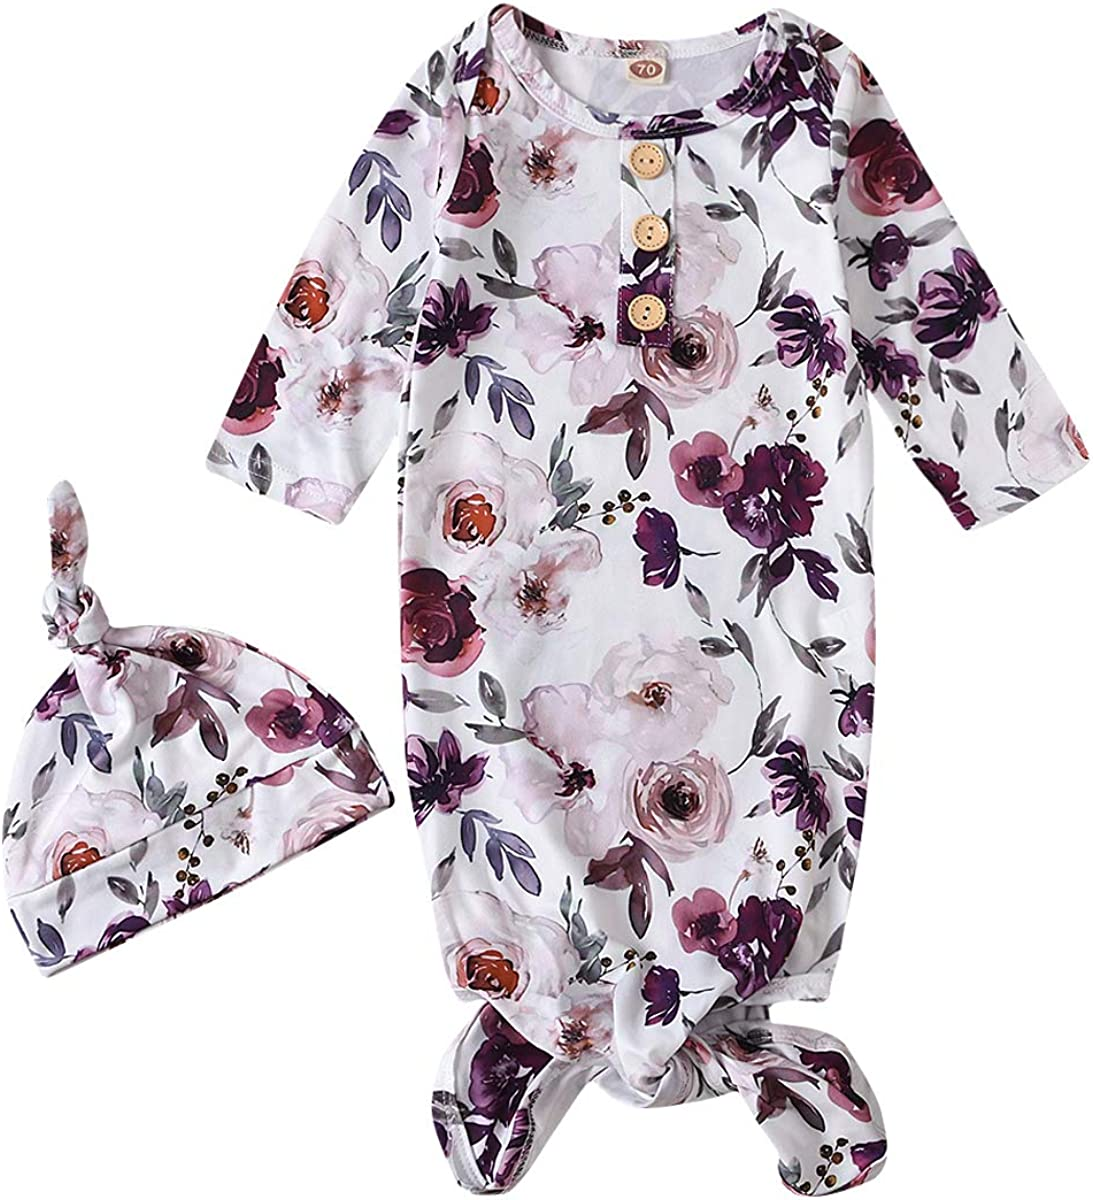 Newborn Baby Girls Floral Sleeper Gown Knotted Nightgown Hat Coming Home Outfits White